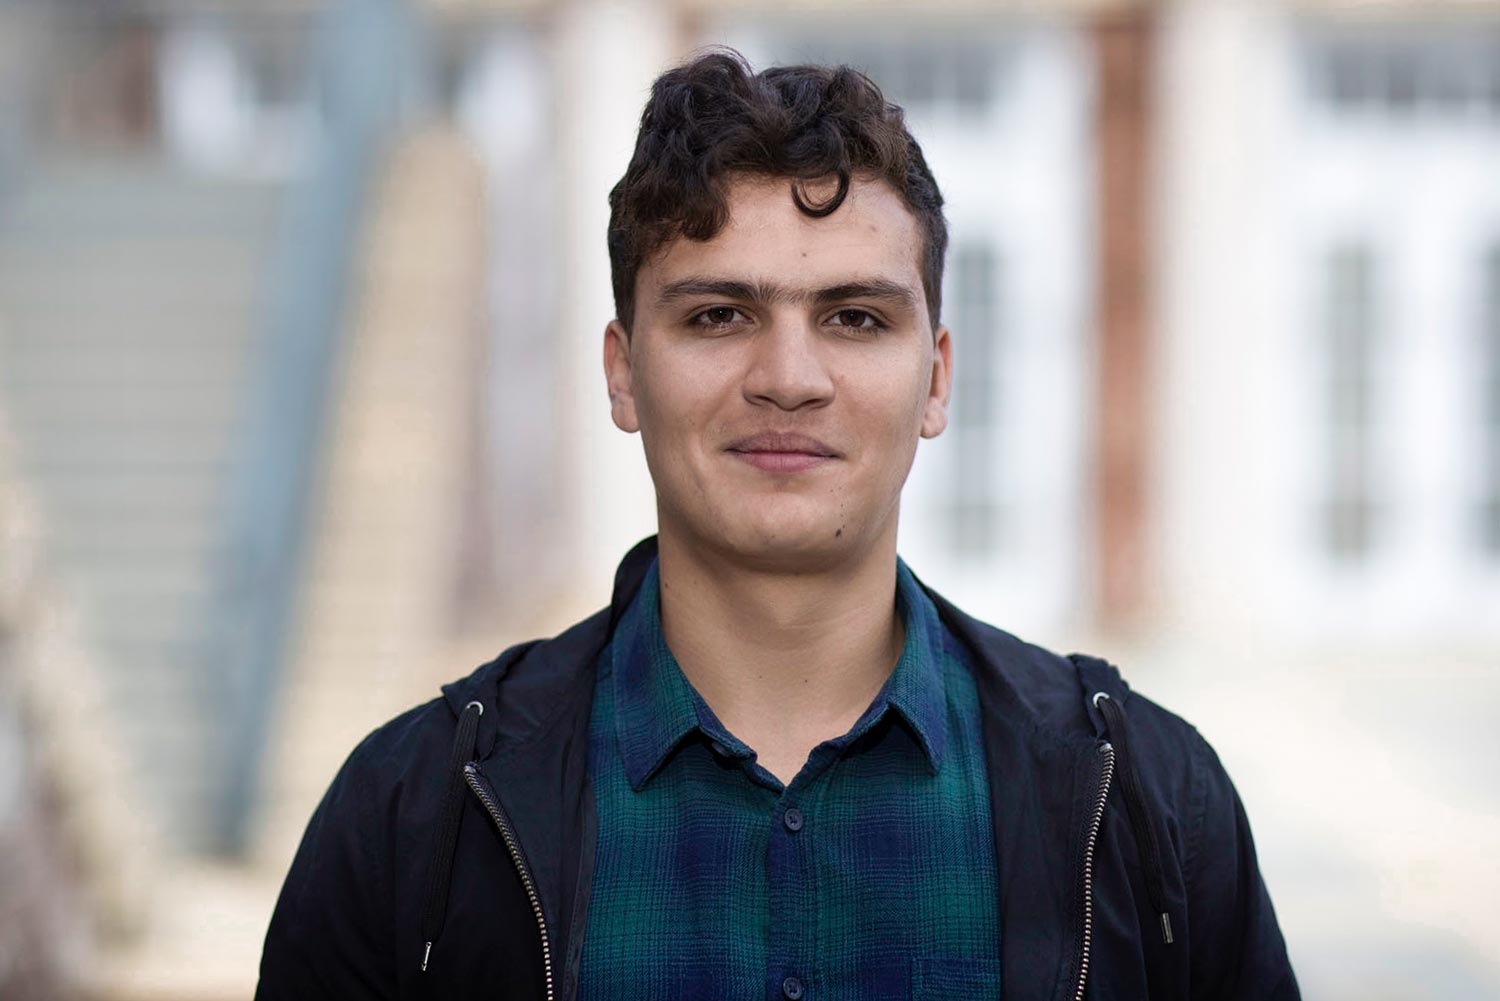 Mateo Semerene has coordinated community outreach efforts in Latin America and Charlottesville.